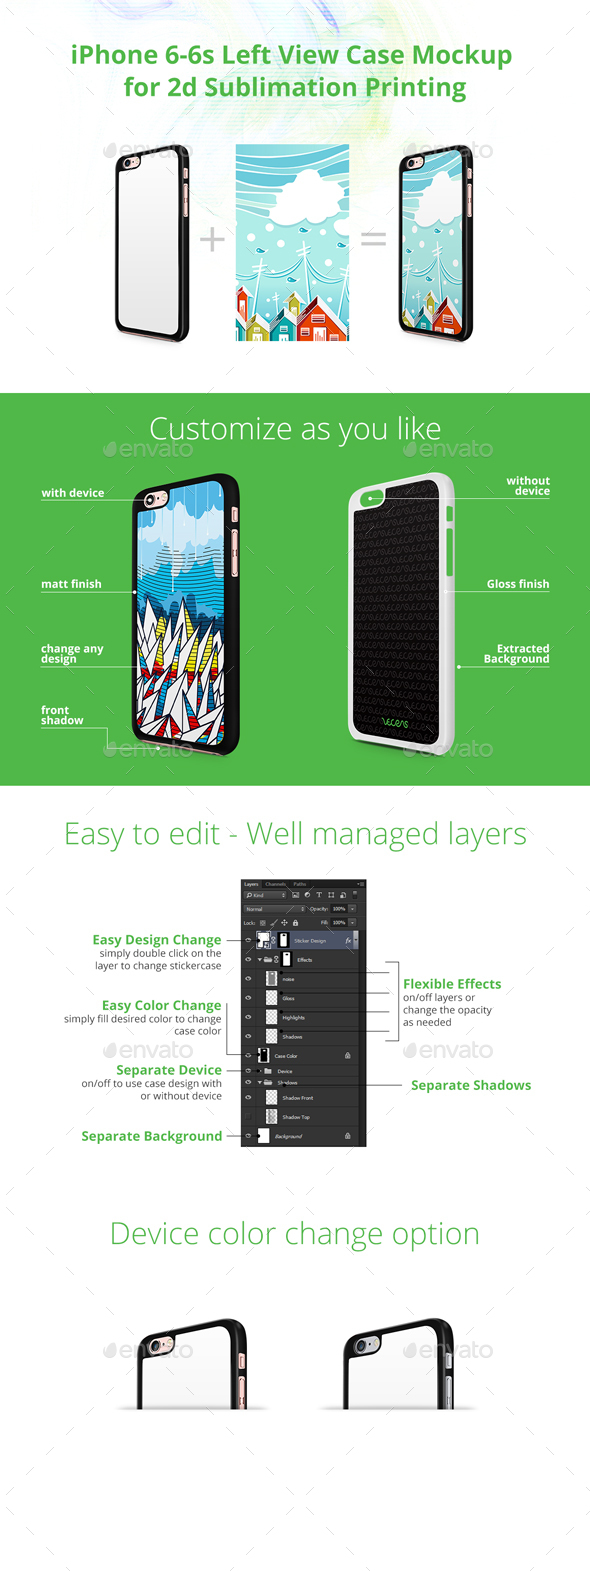 iPhone 6-6s Case Design Mockup for 2d Sublimation Printing - Left View - Mobile Displays